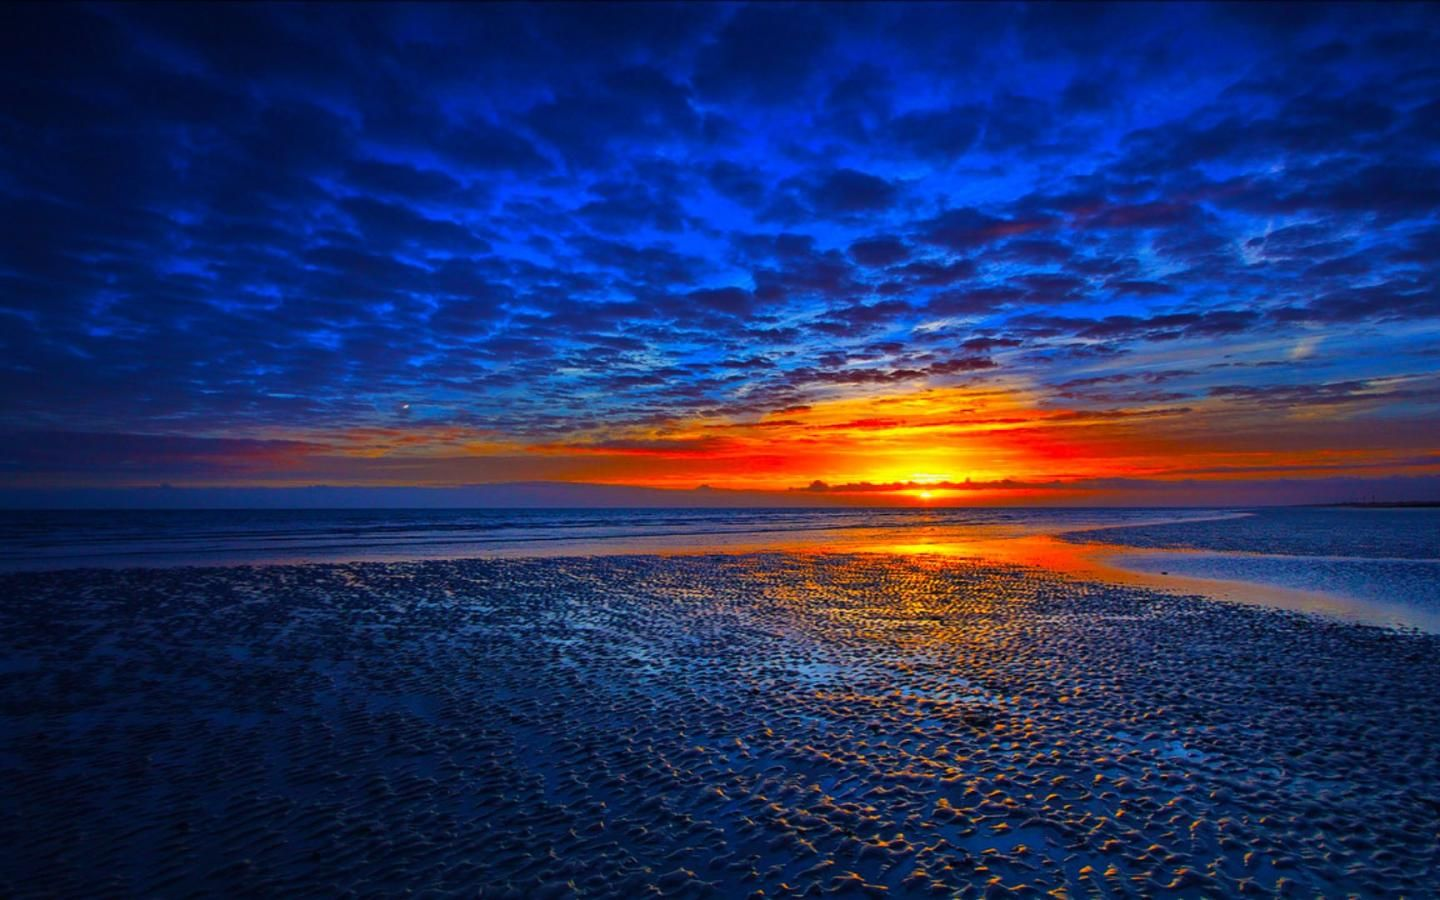 Blue Sunset Backgrounds Sunset Background Sunset Wallpaper Sunset Nature